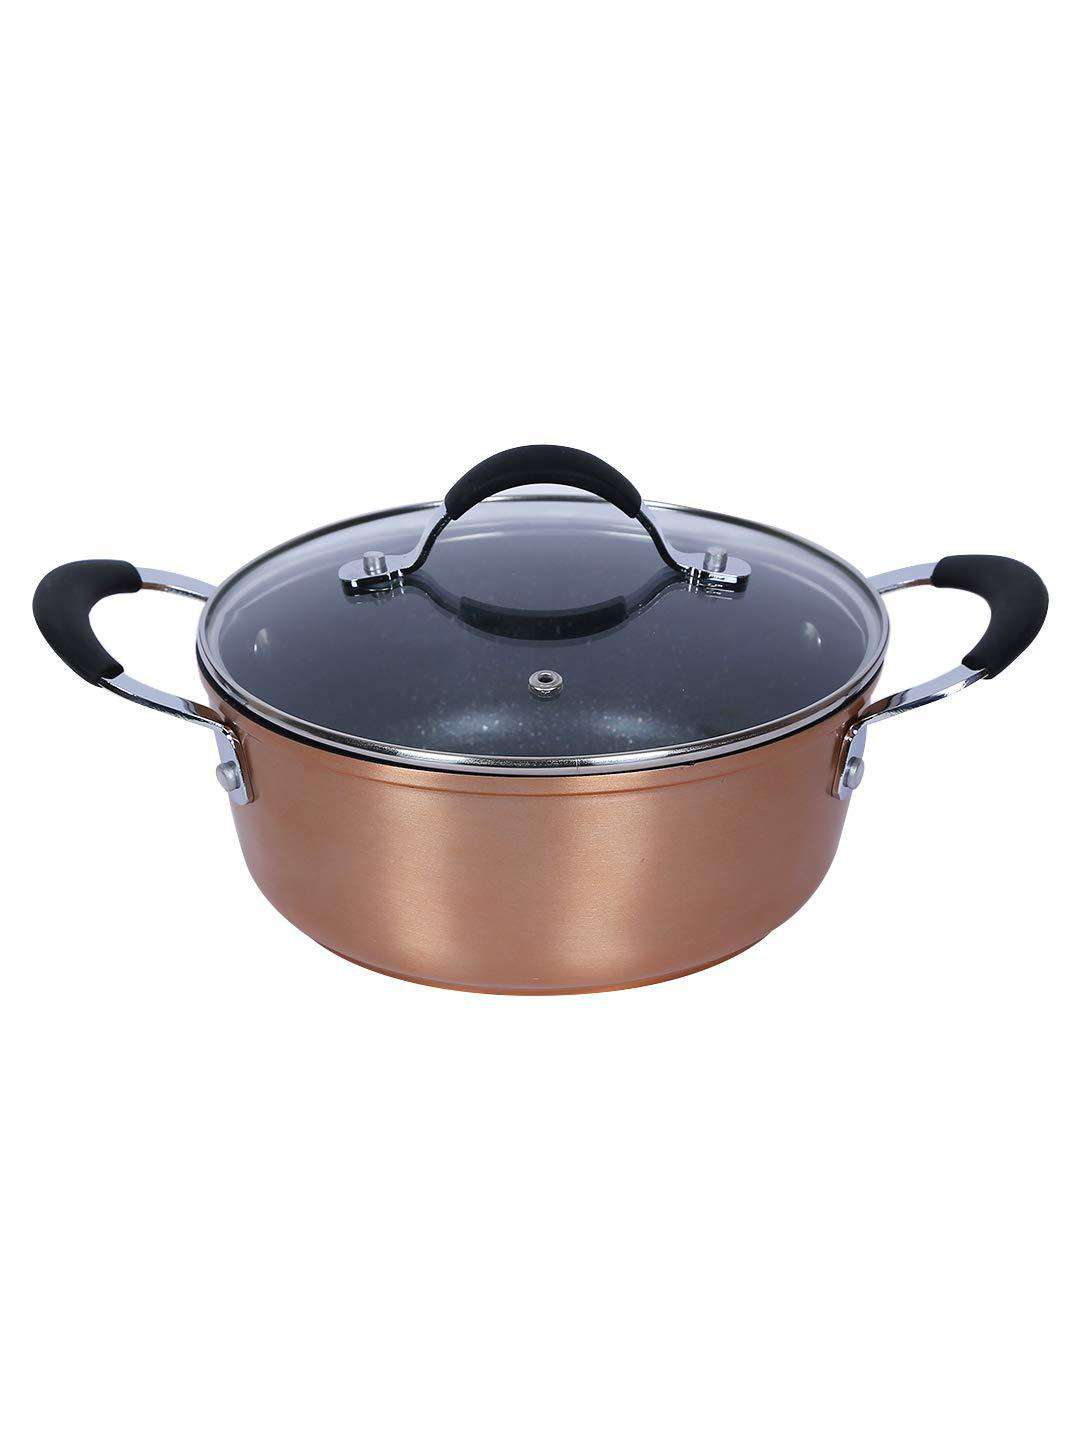 Bergner Infinity Chefs Aluminium Casserole with Lid, 2.29 Litres/20cm, Copper